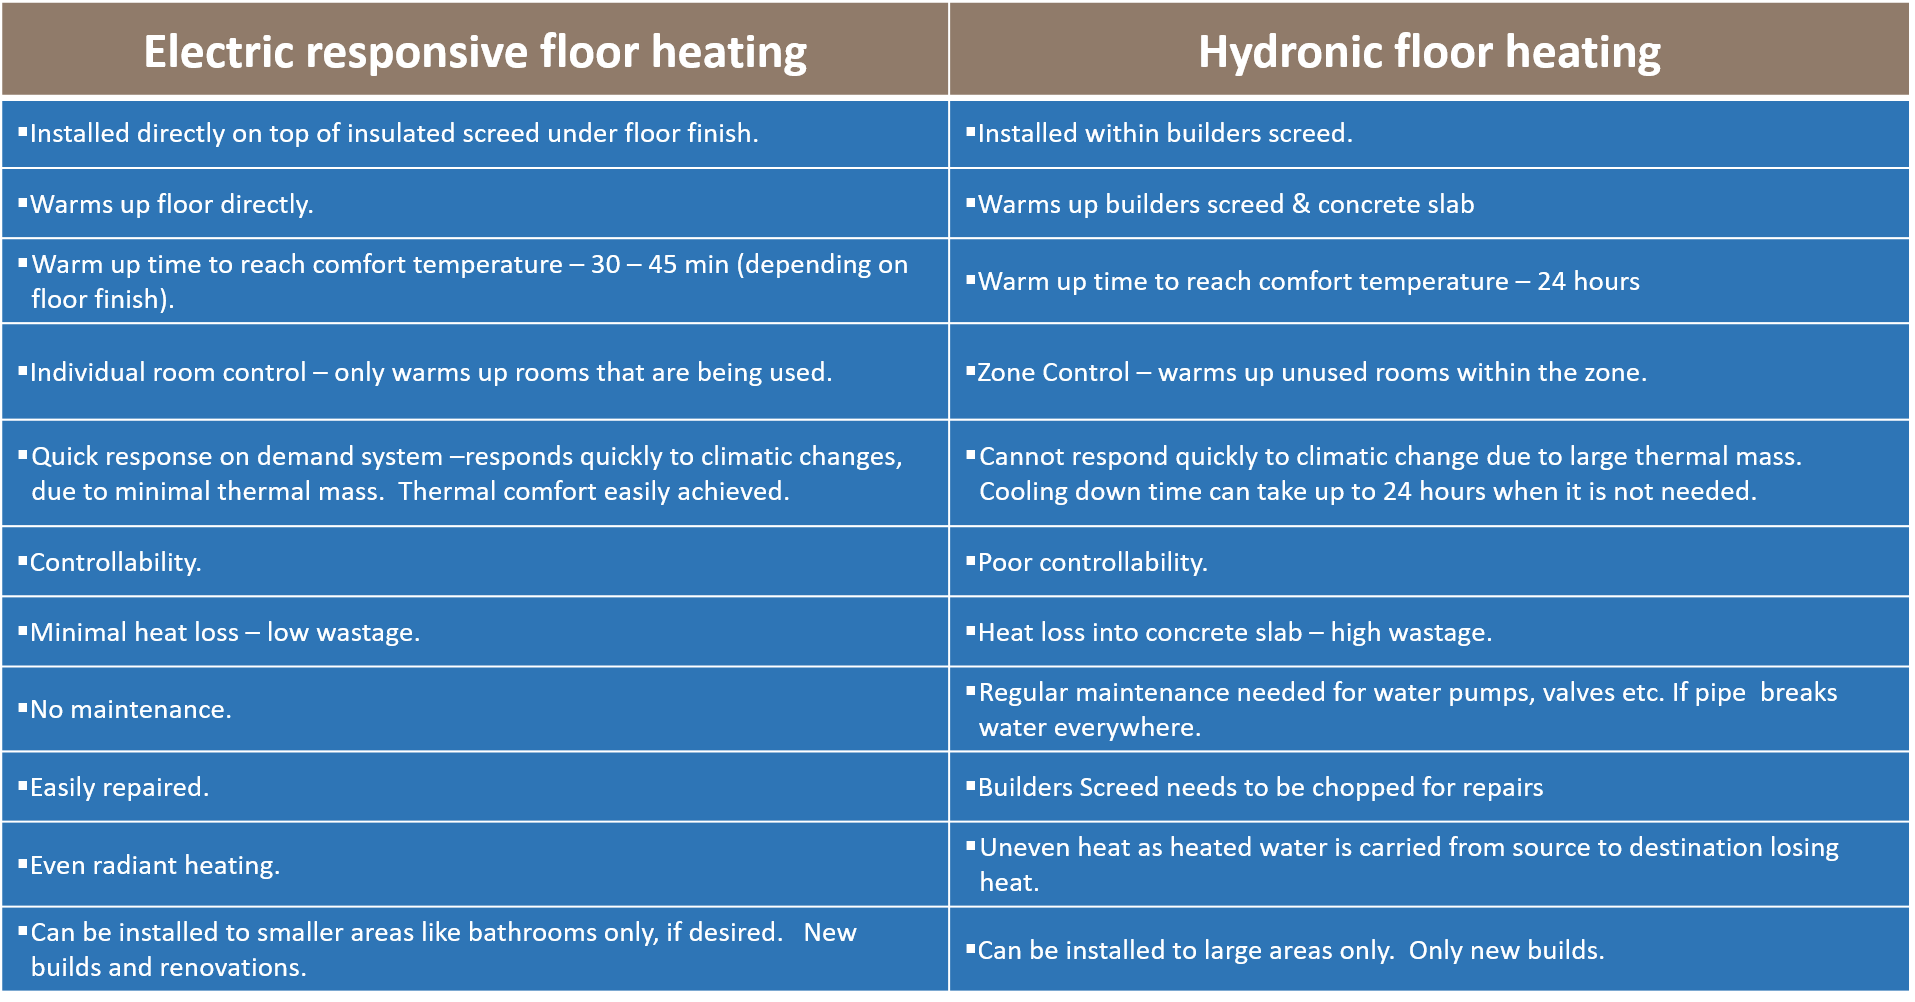 Electric Responsive Floor heating vs Hydronic Floor Heating